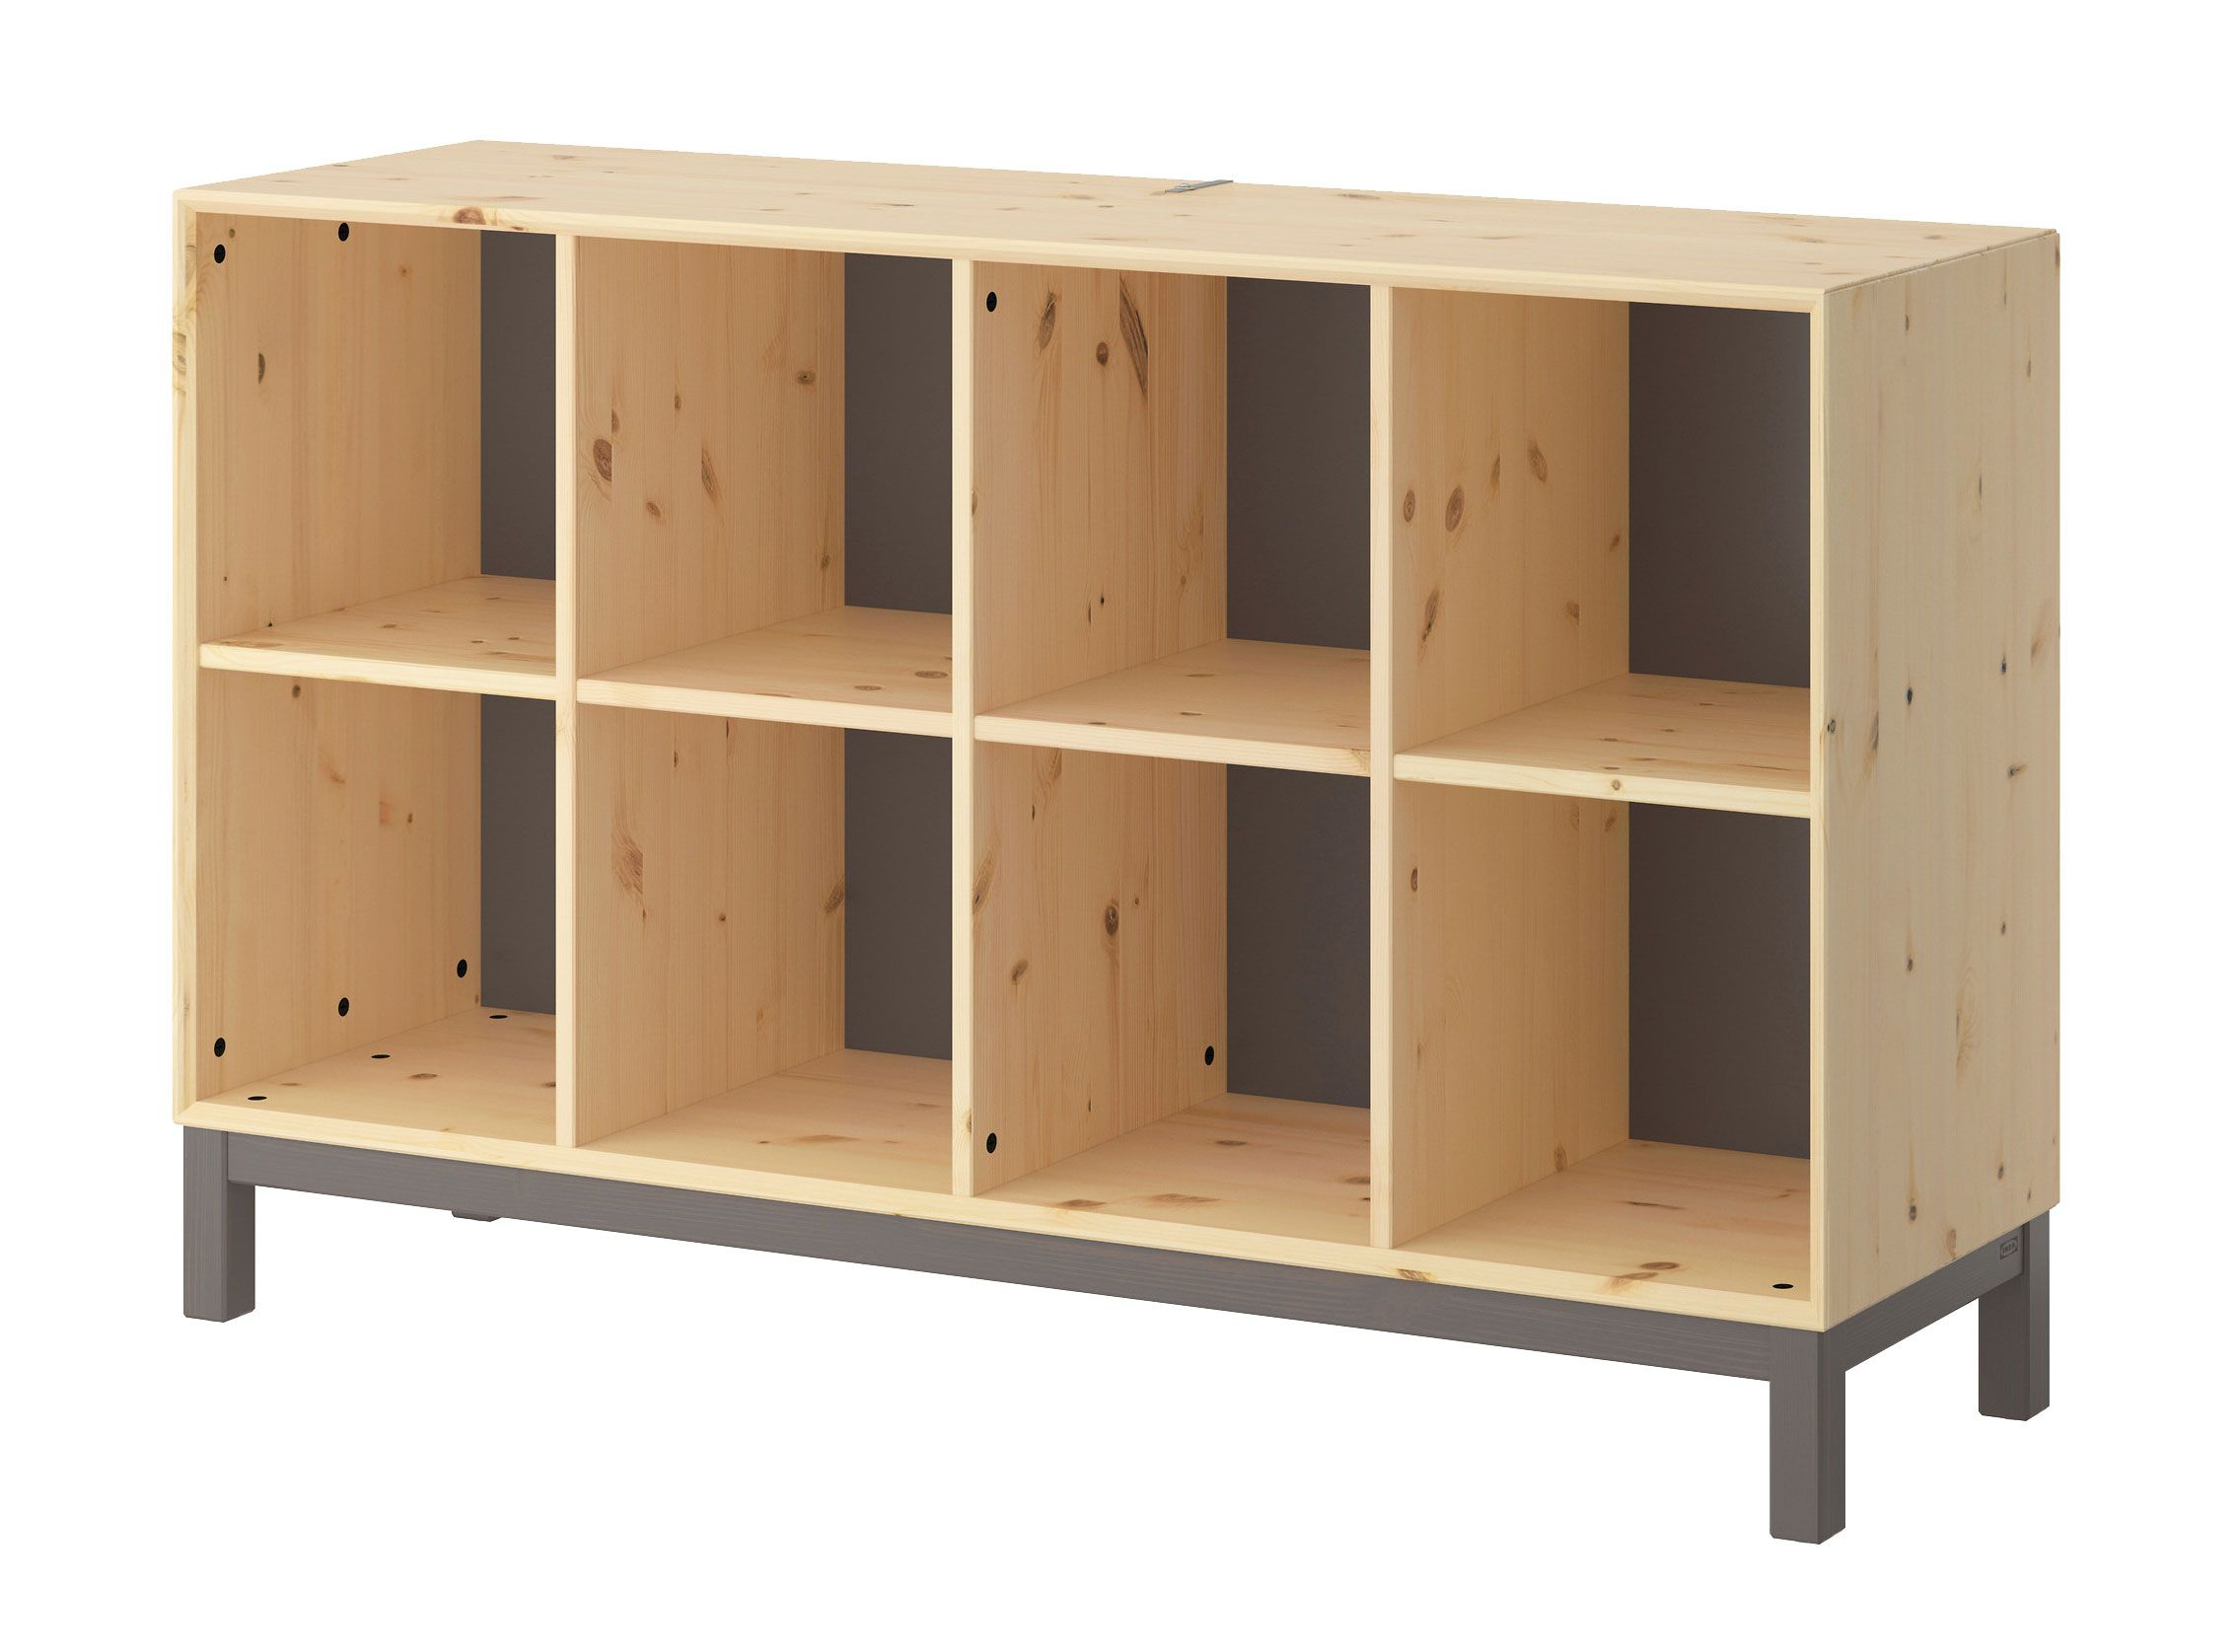 norn s sideboard basic unit ikea instead of two fold up tables for placing volunteer snacks 2 of these side by side gives table space for food  [ 2268 x 1675 Pixel ]